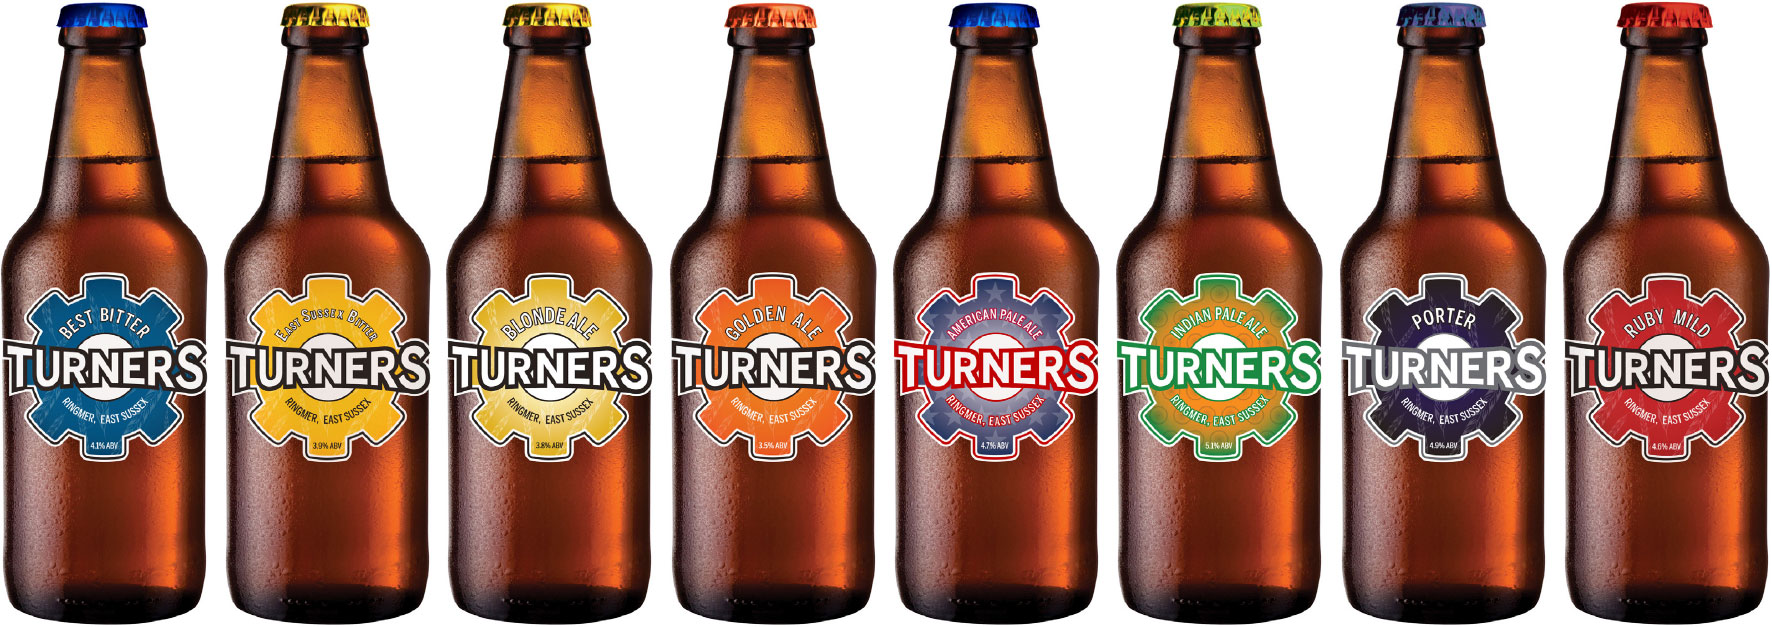 Turners Beer Full Range (Old Logo)